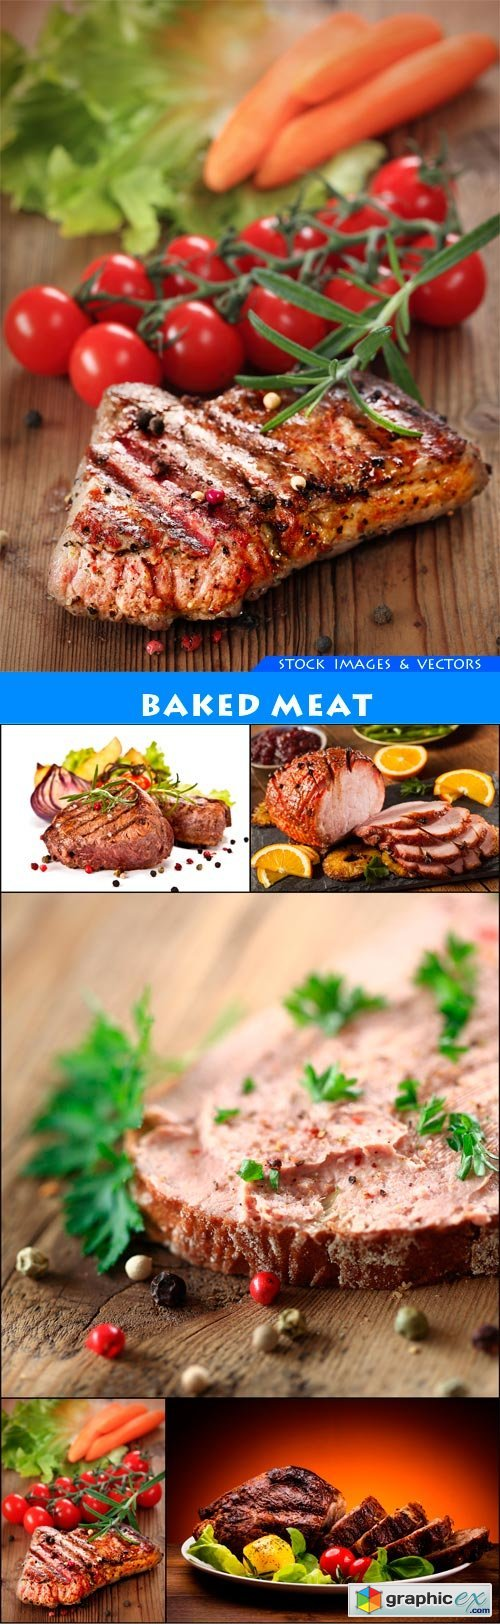 Baked meat 5X JPEG